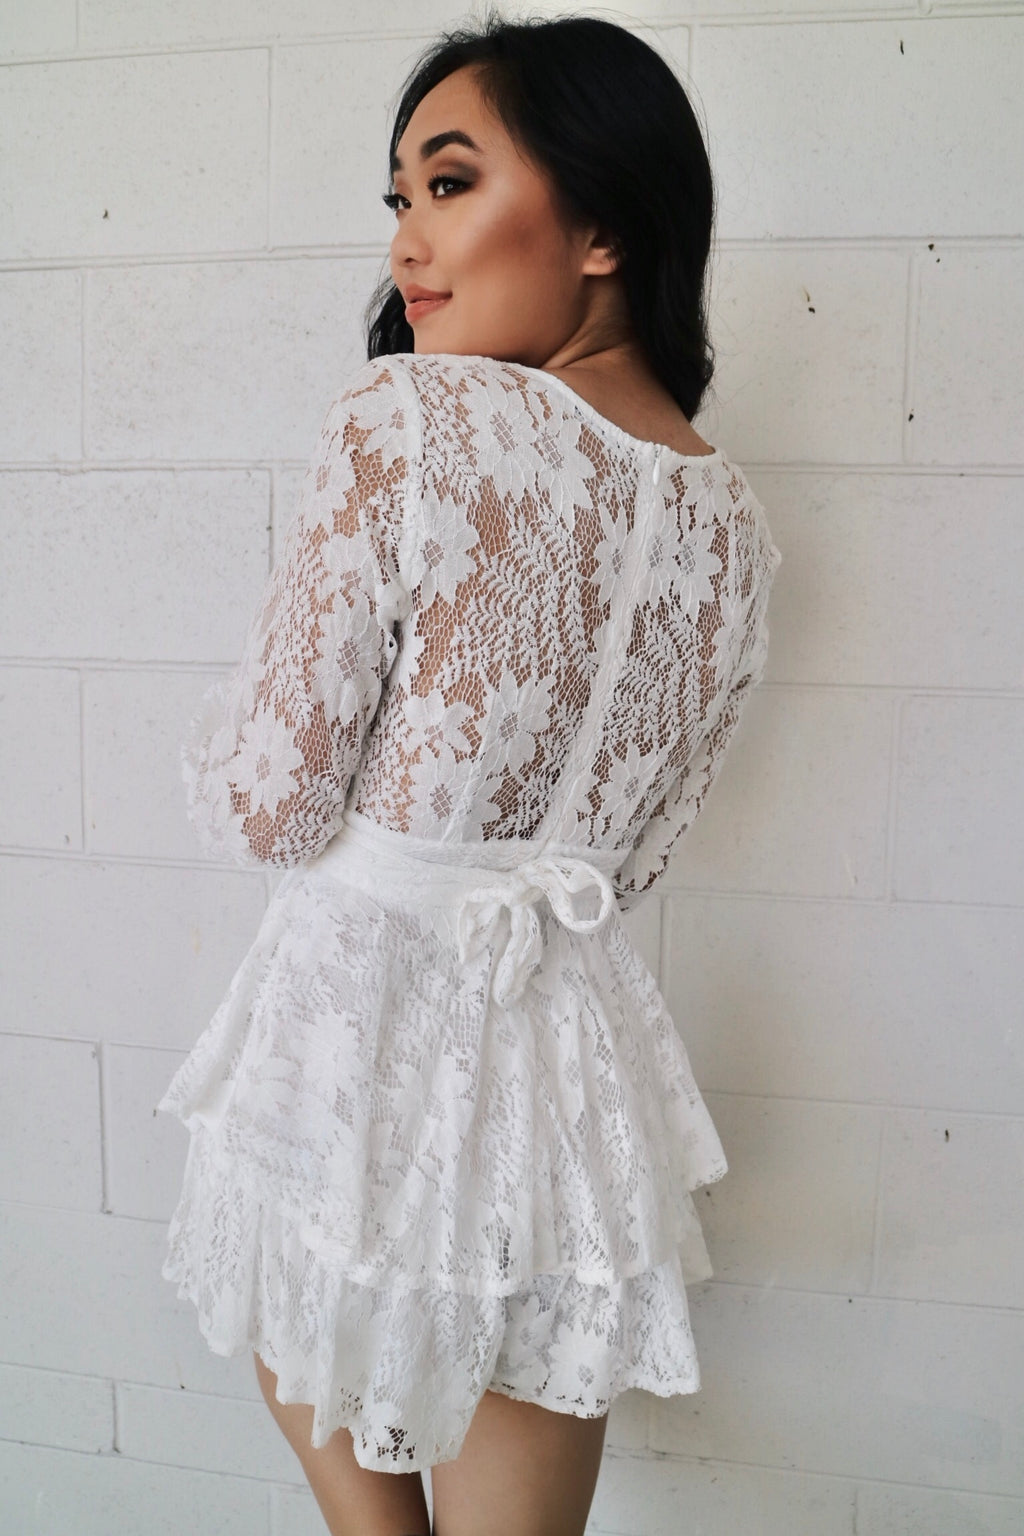 Monaco Lace Playsuit - White - Runway Goddess